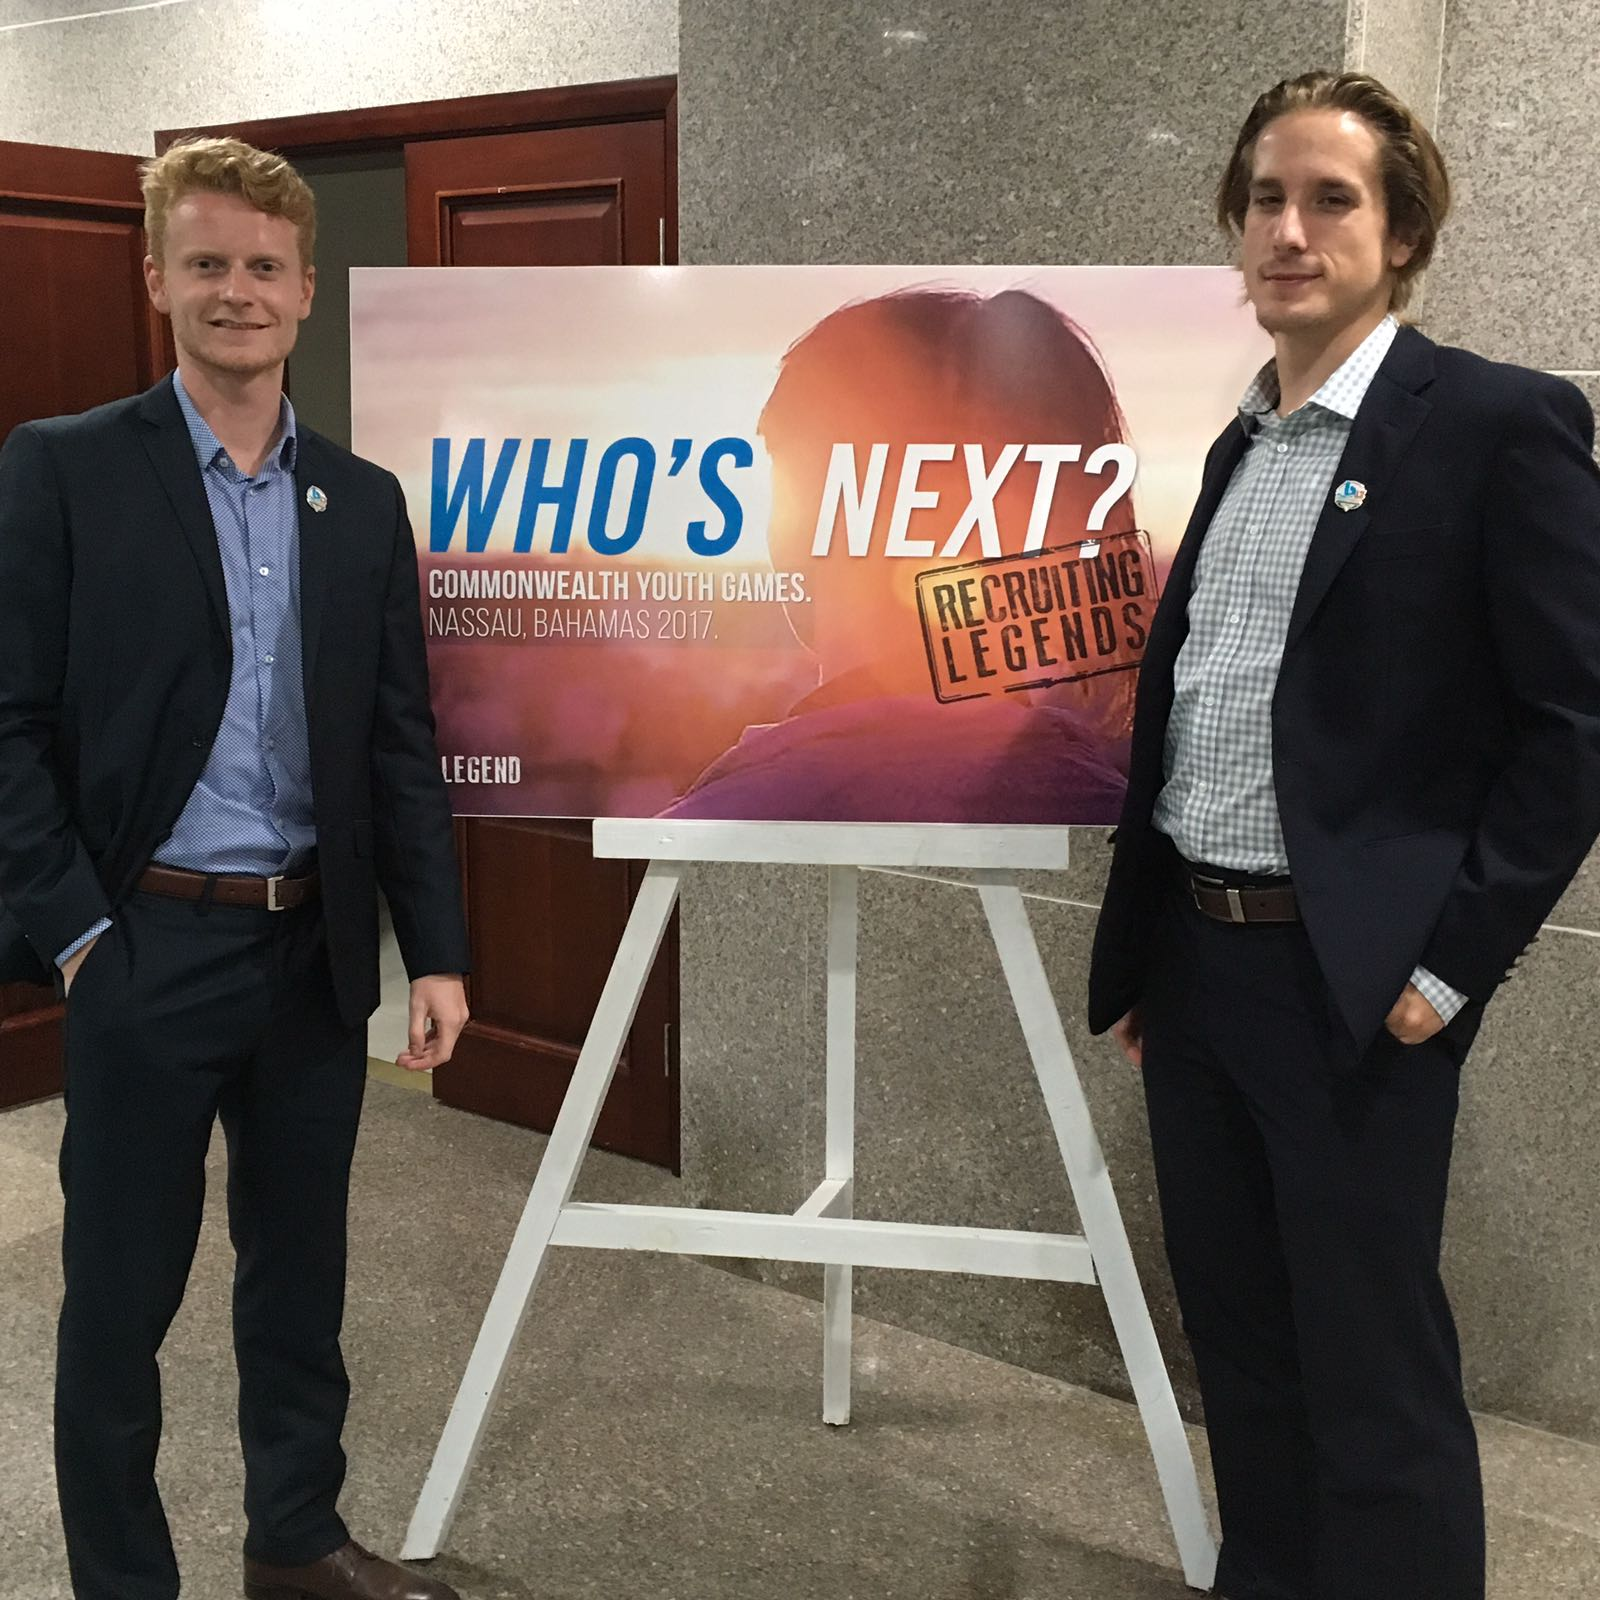 canadian ambassadors who s next the main marketing campaign focused around who will be the next